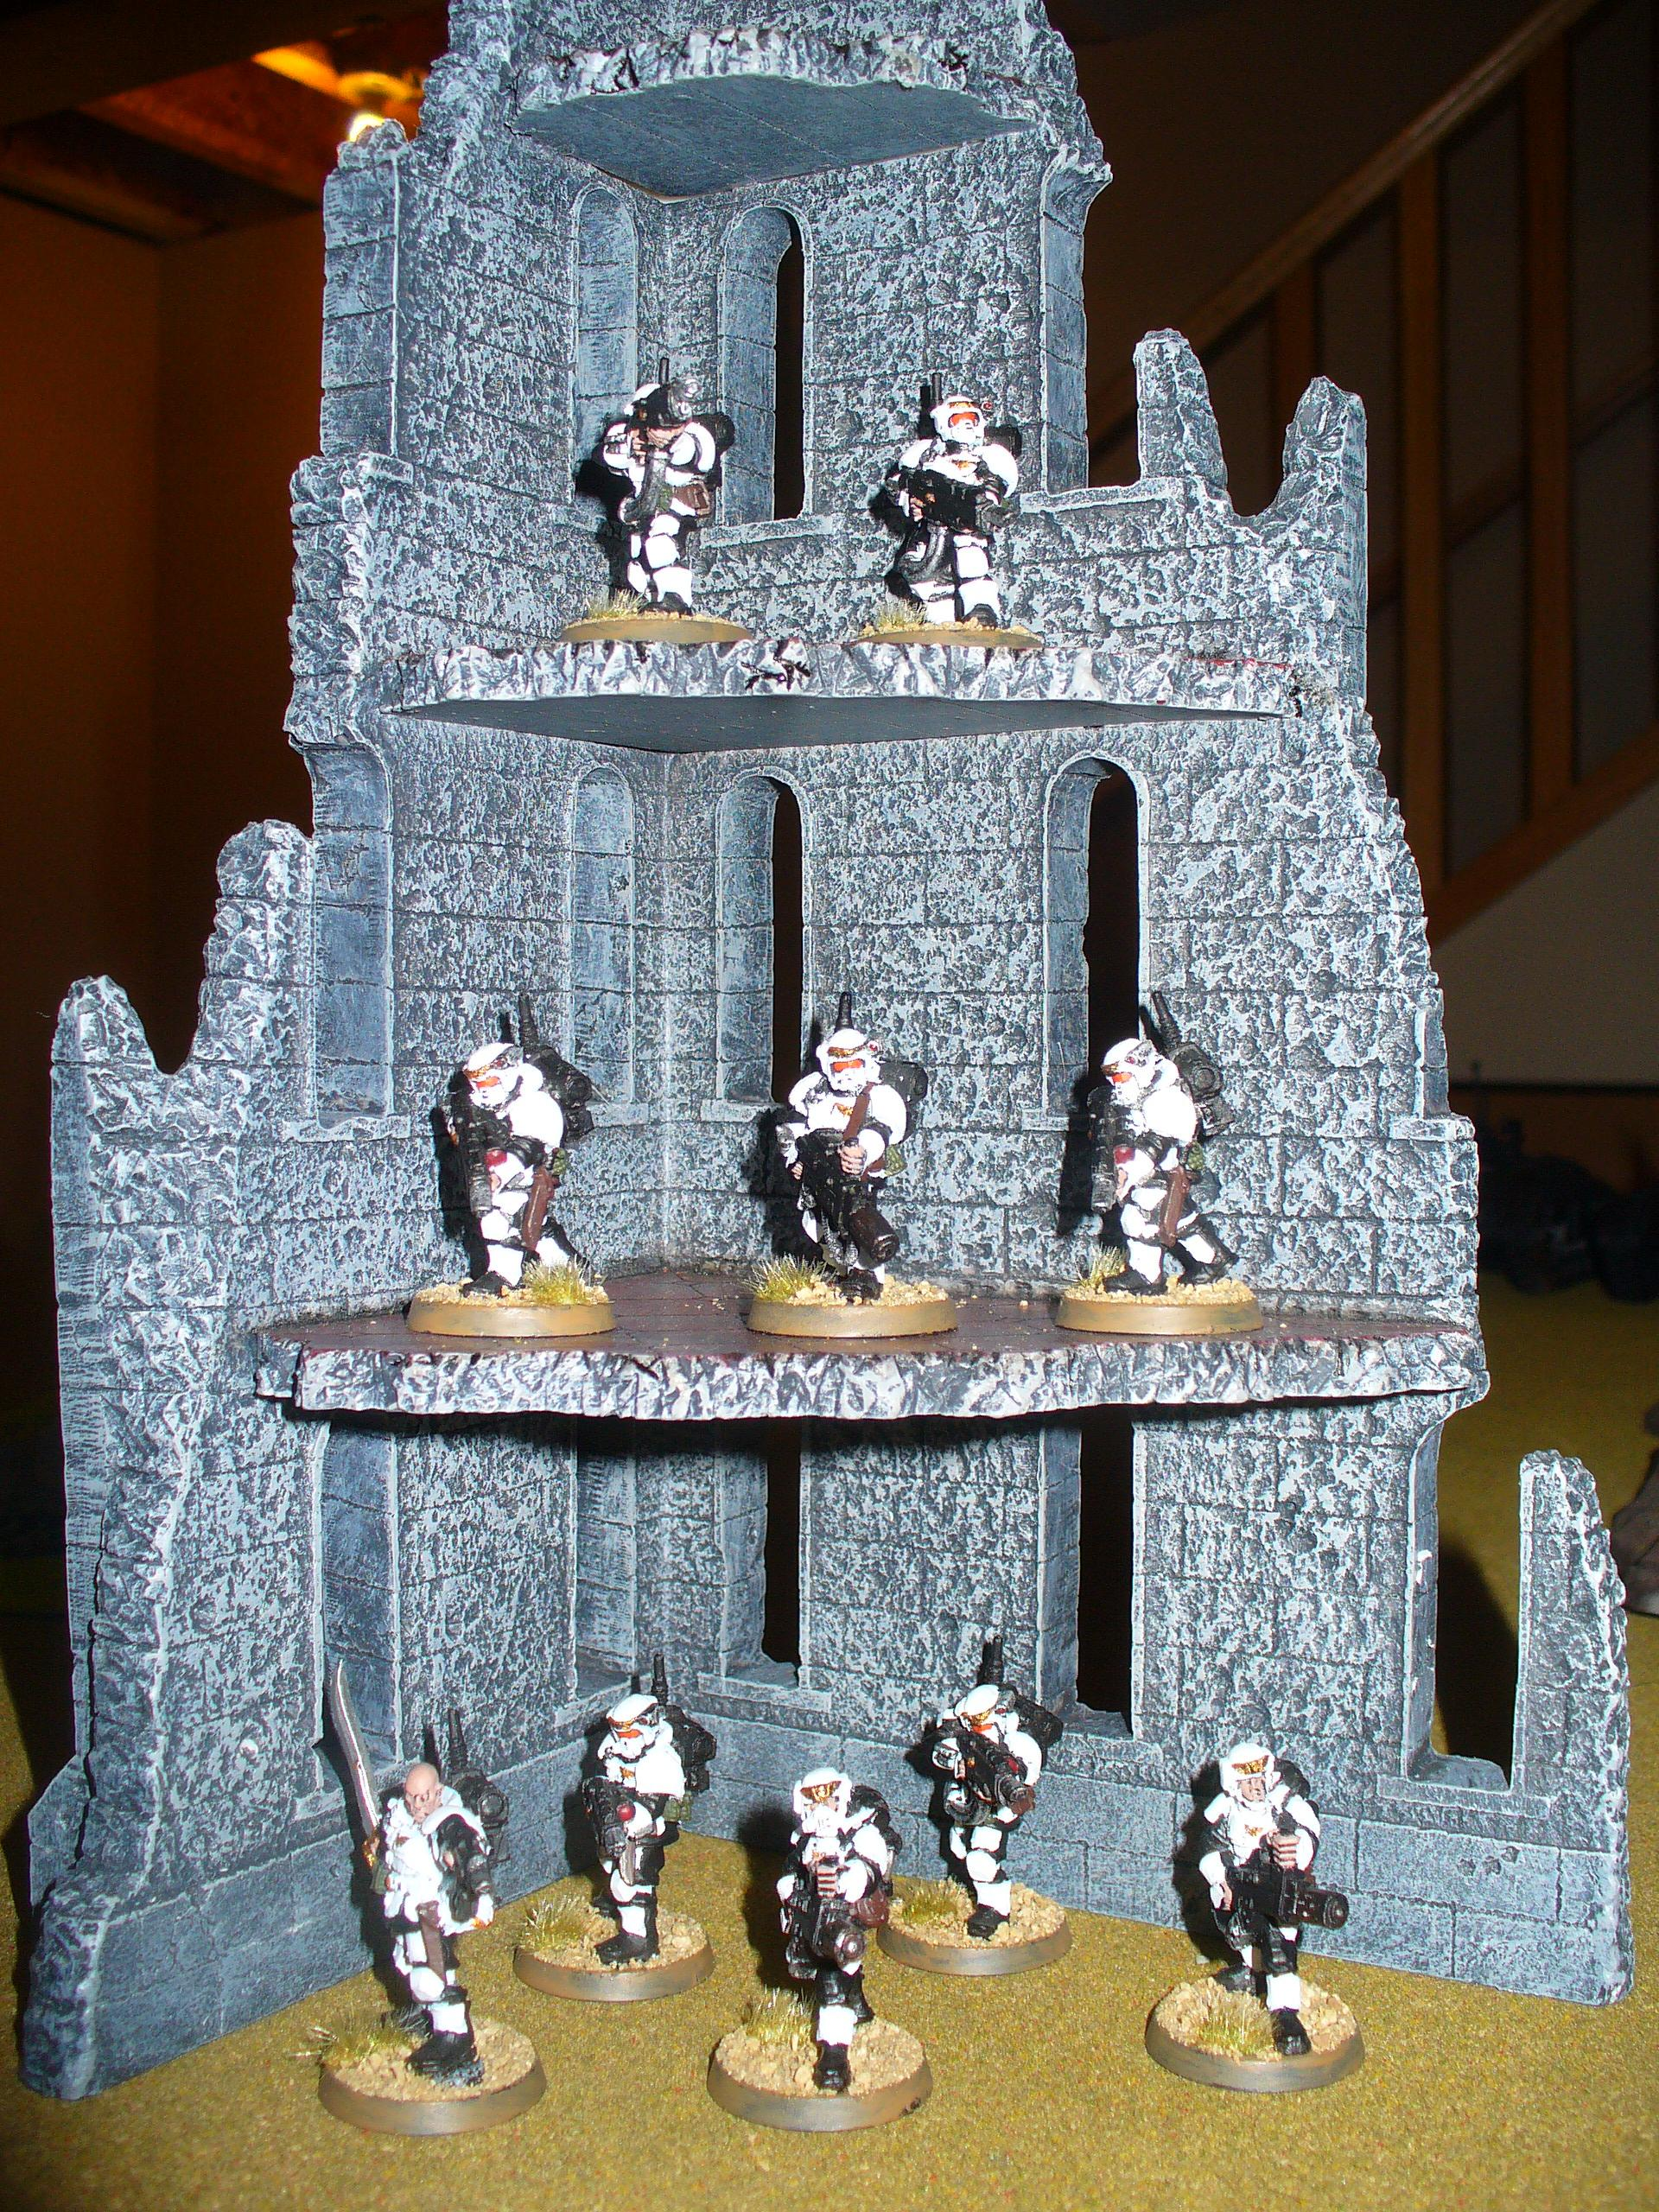 And like every good Guardsmen, they know the importance of cover!